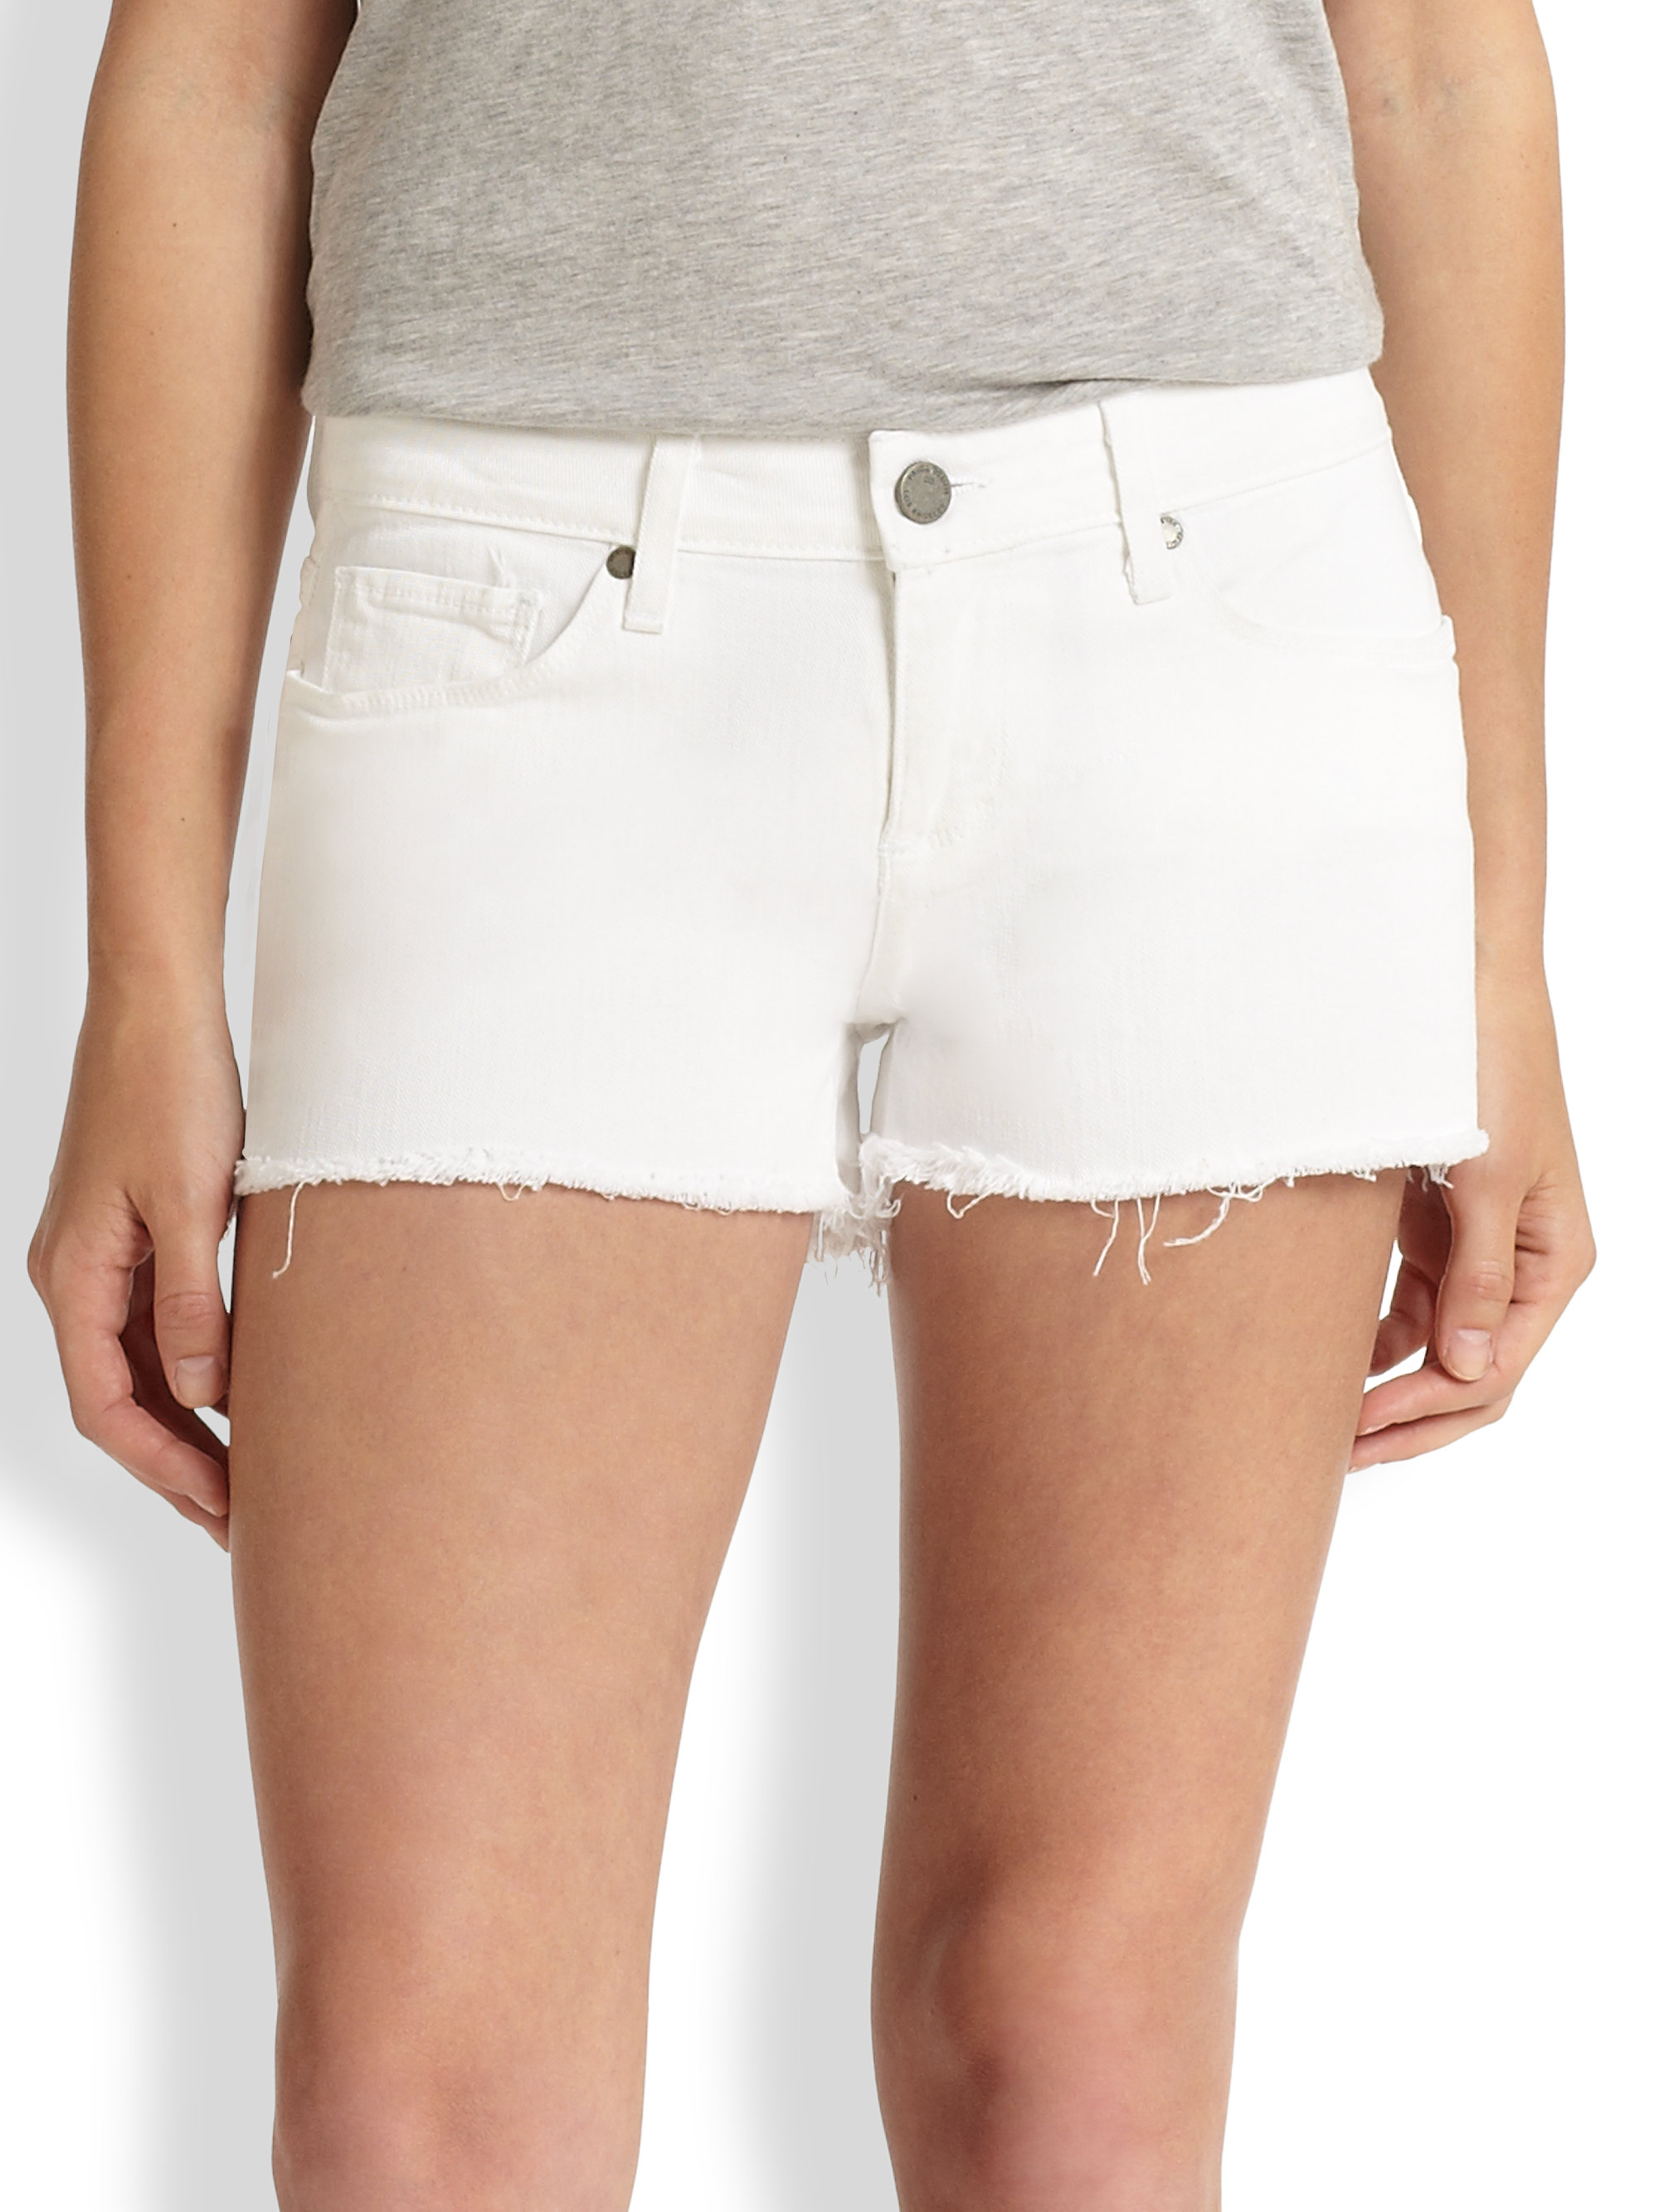 Tesla Sells Short Shorts: Ridiculously Overpriced but Oh